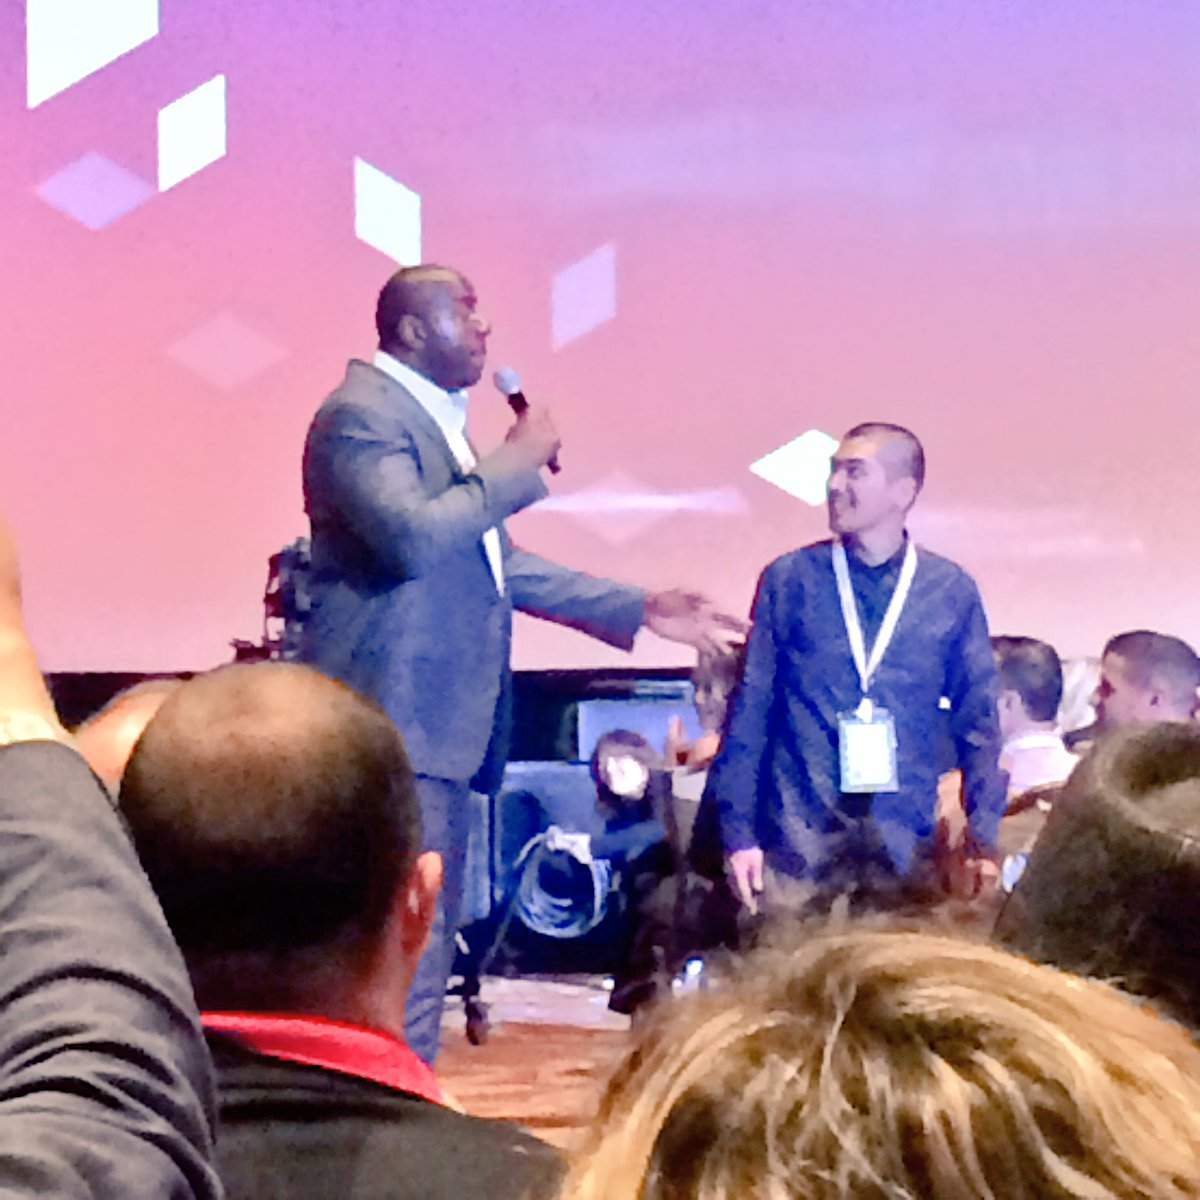 mmiller75: #MagentoImagine is continuing to inspire through the amazing stories of #entrepreneur  @MagicJohnson. Brilliant man. https://t.co/XGllQ8c9l8